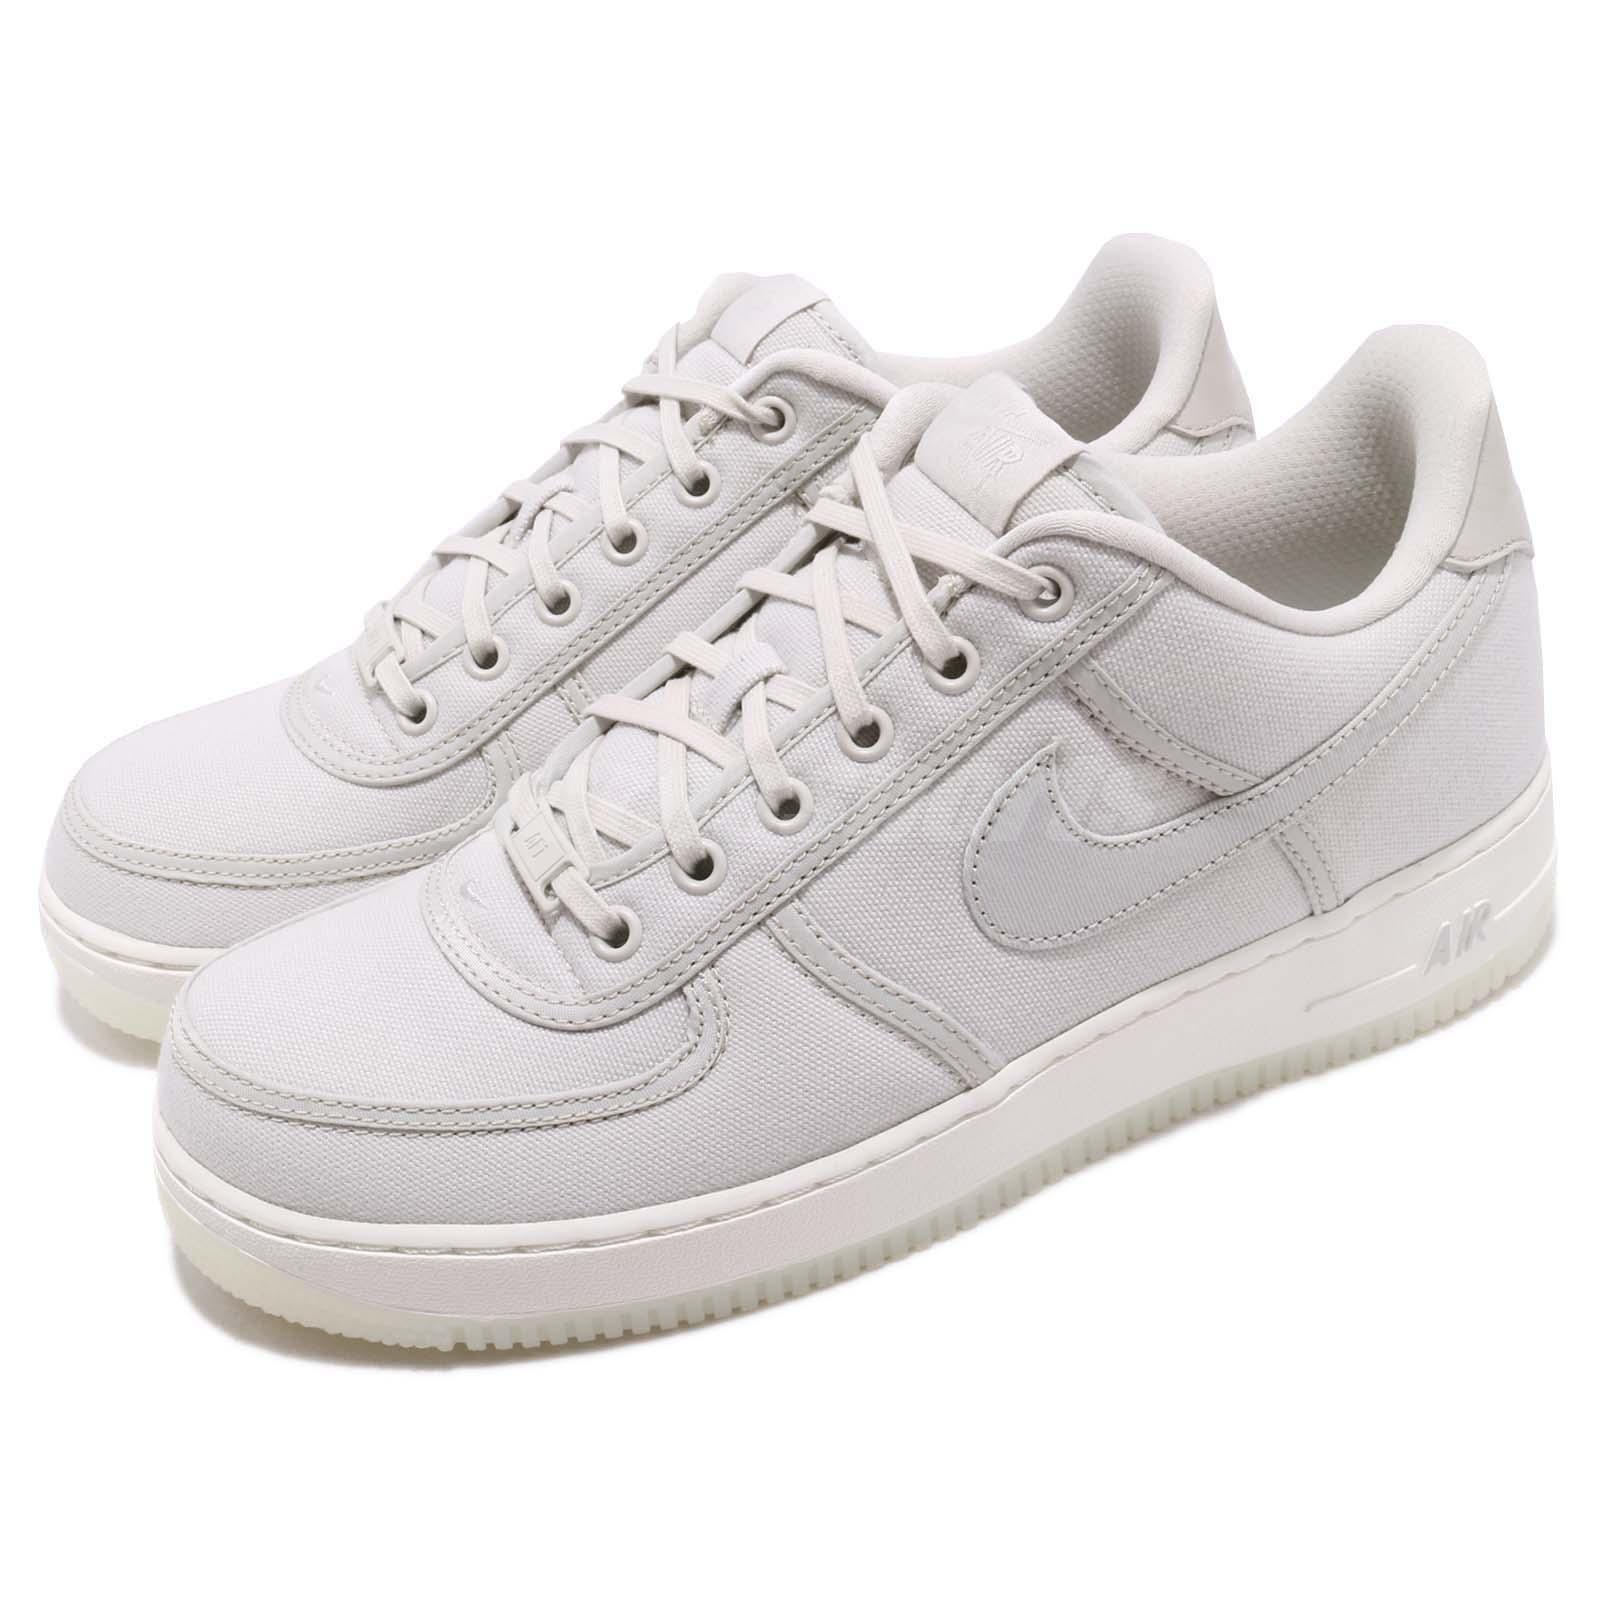 a5cf18333 Details about Nike Air Force 1 Low Retro QS CNVS Canvas Light Bone Mens  Shoes AF1 AH1067-003